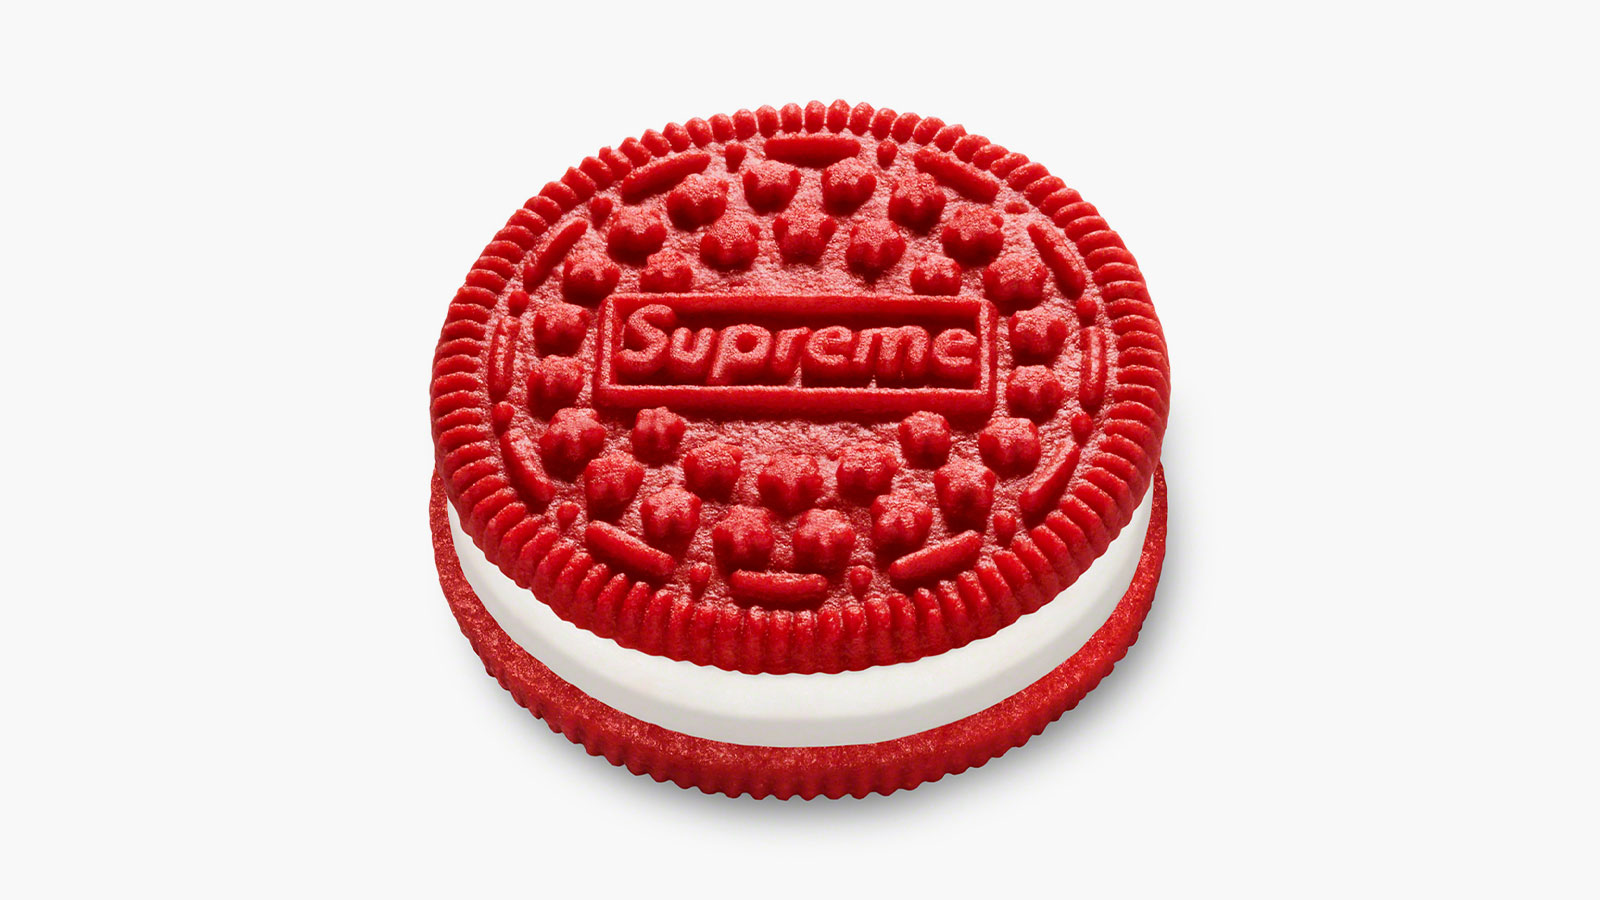 Supreme x Oreo Cookie